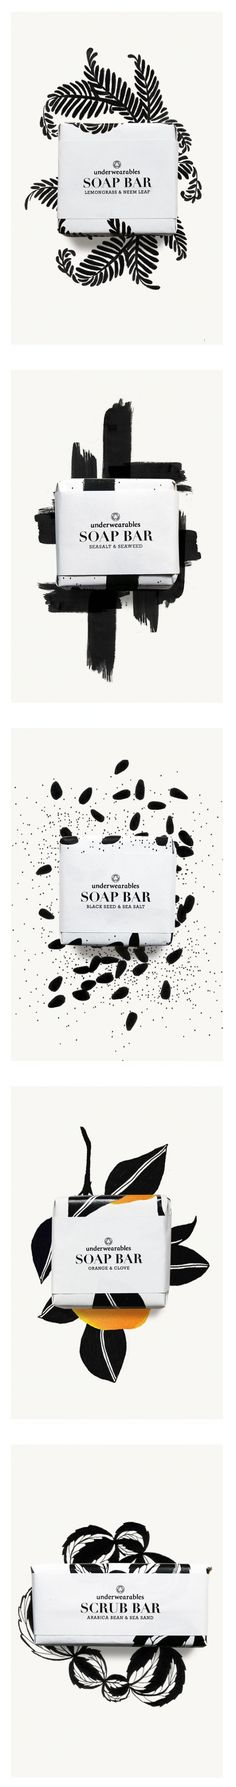 underwearables SOAP BAR #packaging